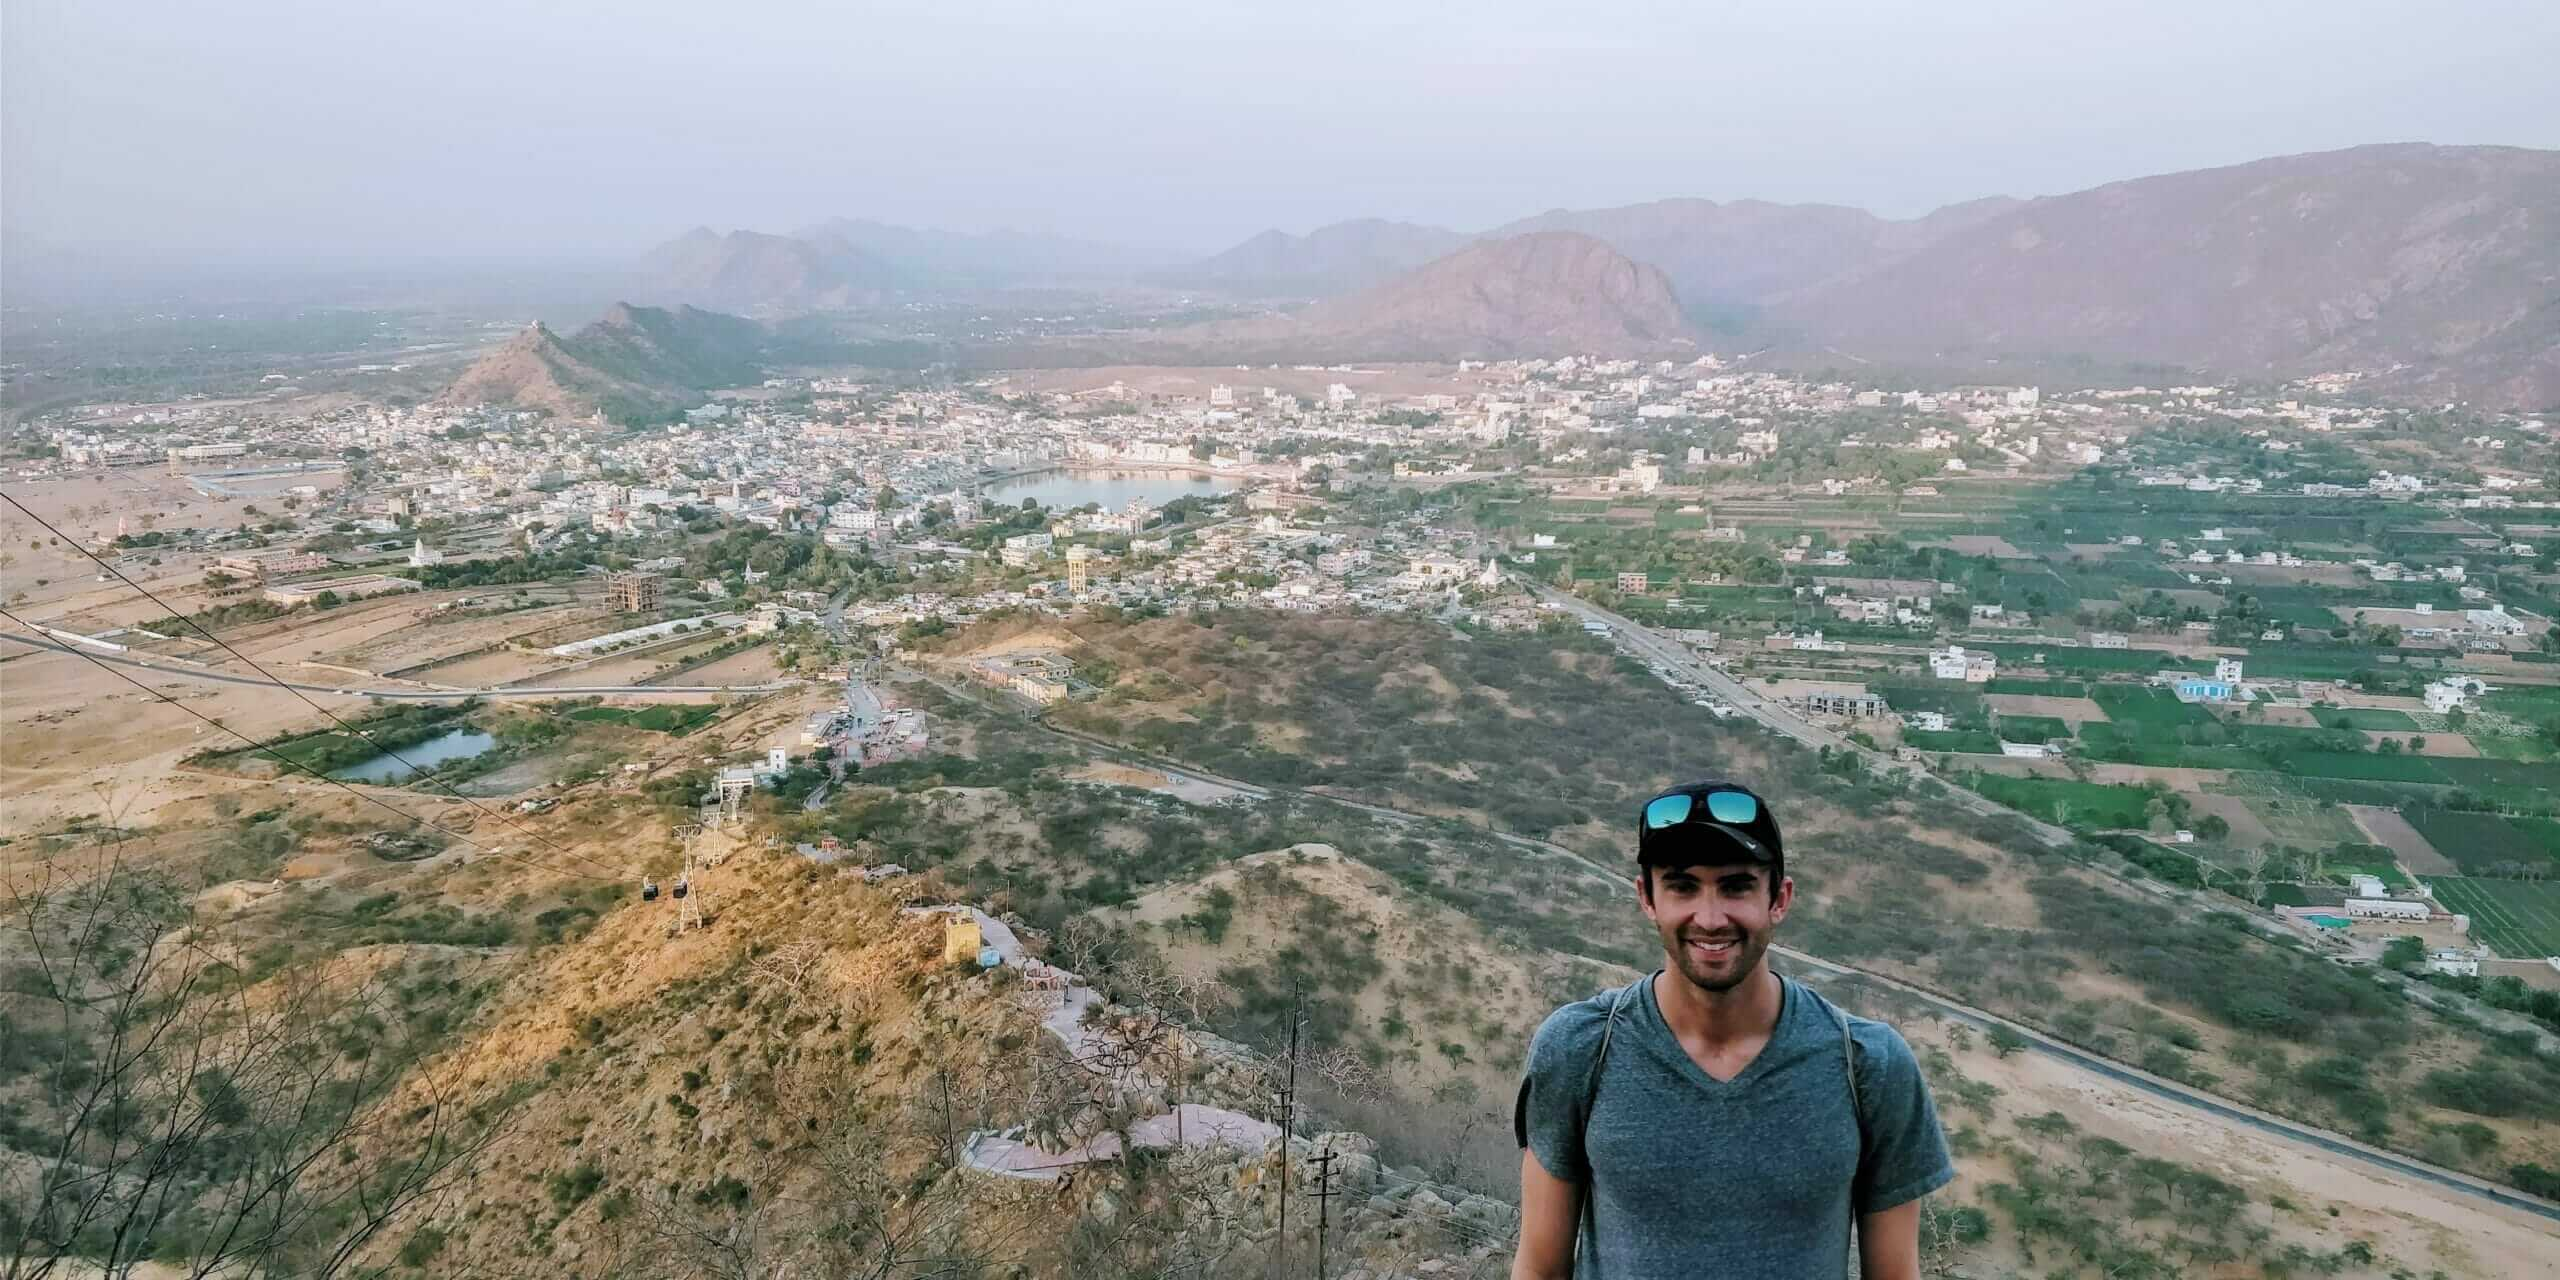 View of Pushkar, India from Savitri Mata Temple